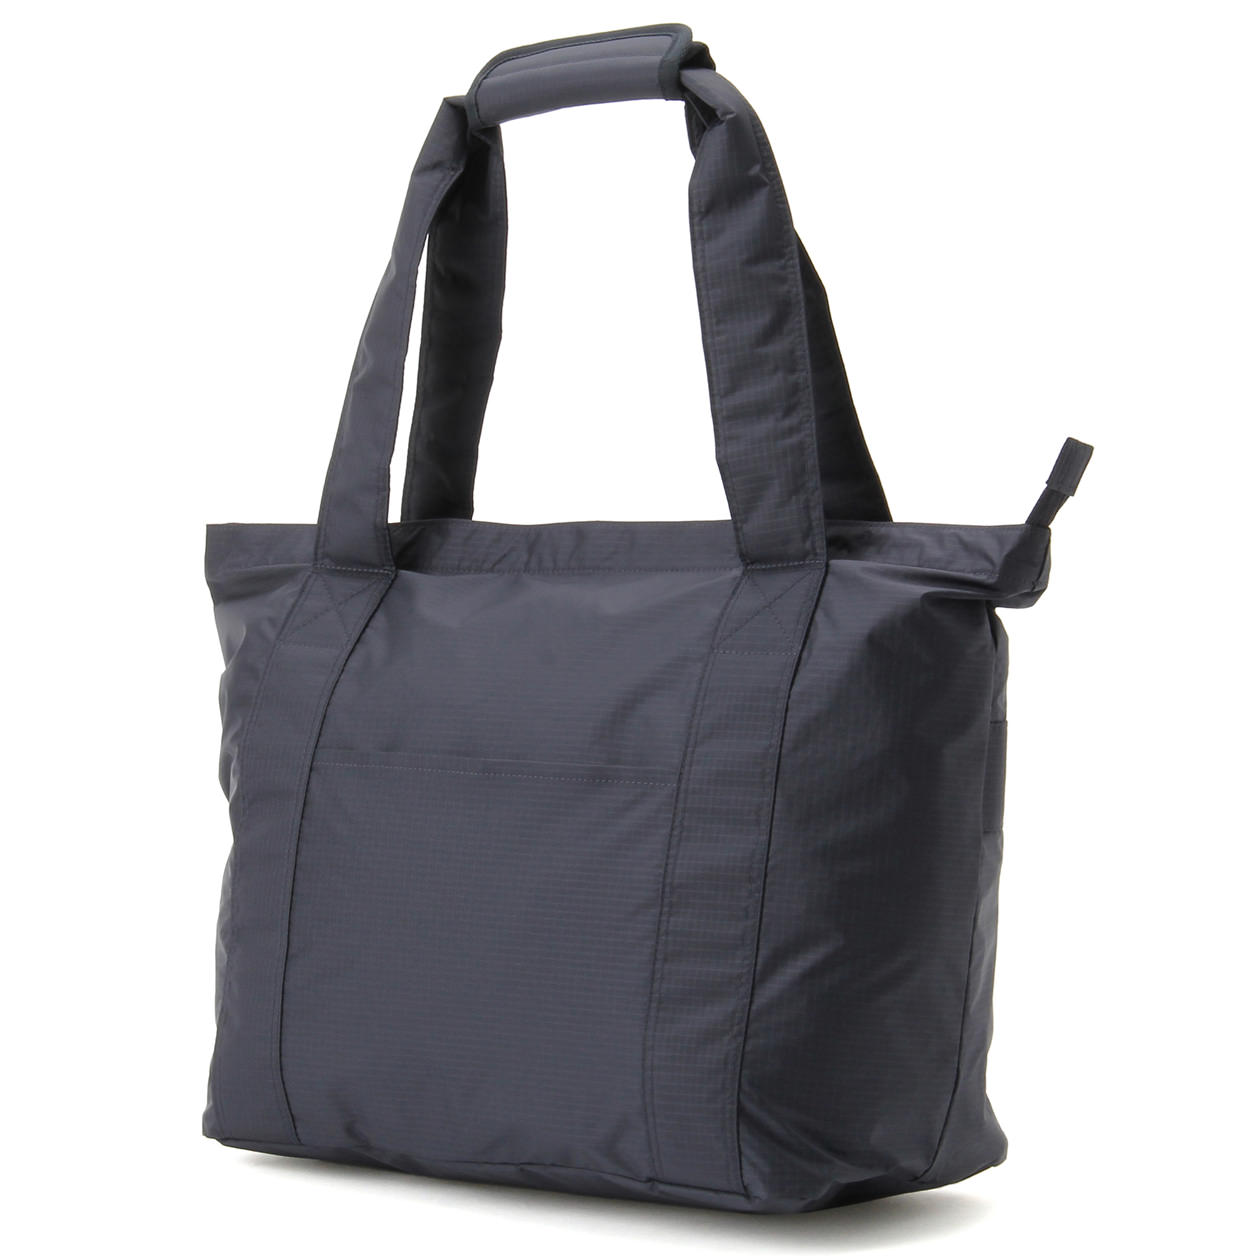 f32f2ce2c1 PARAGLIDER CLOTH FOLDABLE TOTE BAG WITH POUCH (CARRY ON) NAVY